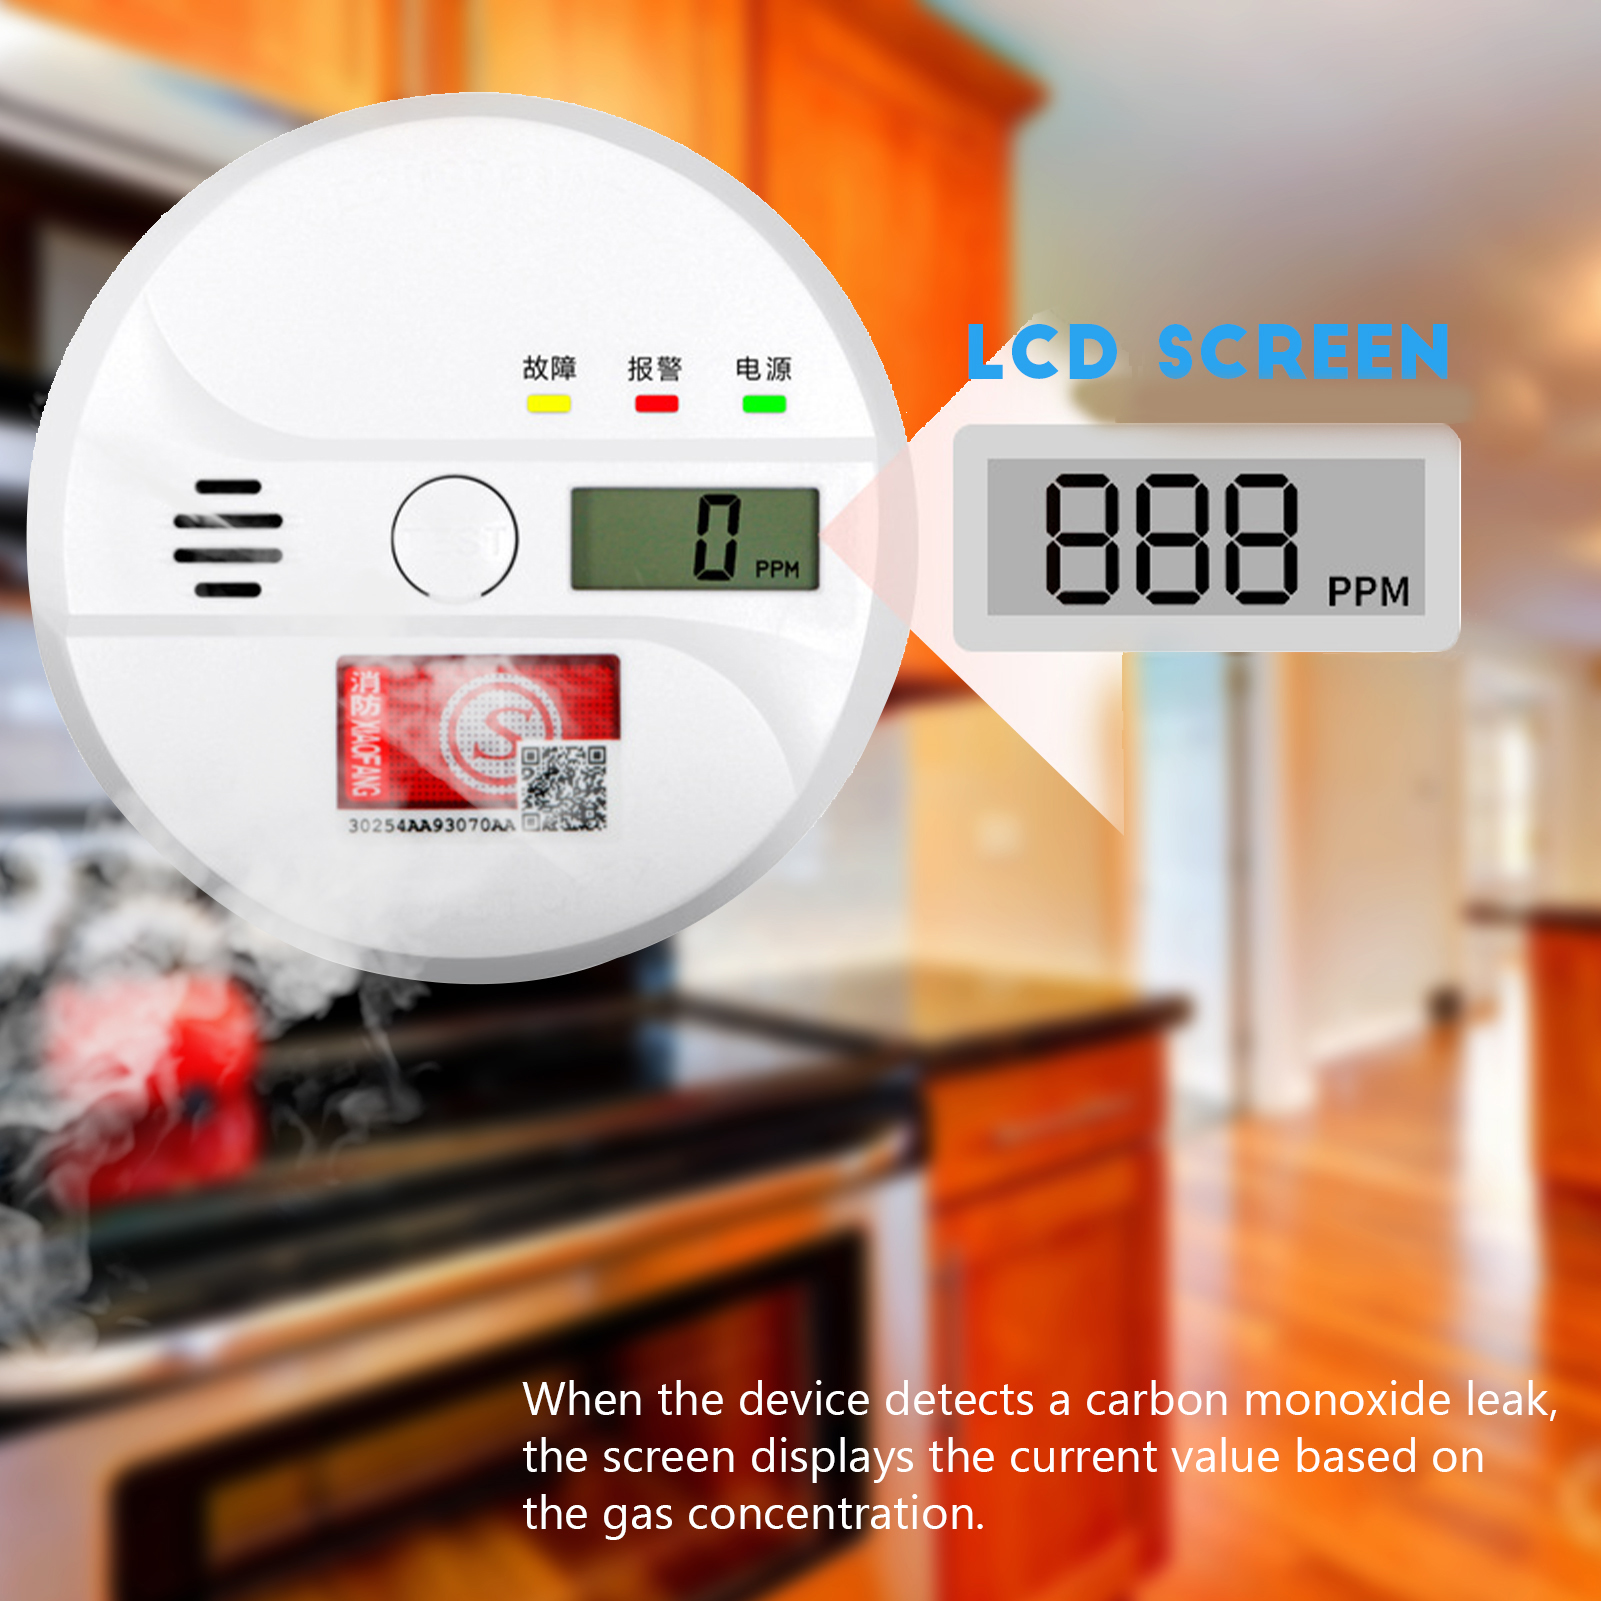 Romantic Carbon Monoxide Alarm Detector With Digital Display Battery Operated Household Safety Equipment For Home Bedroom Kitchen